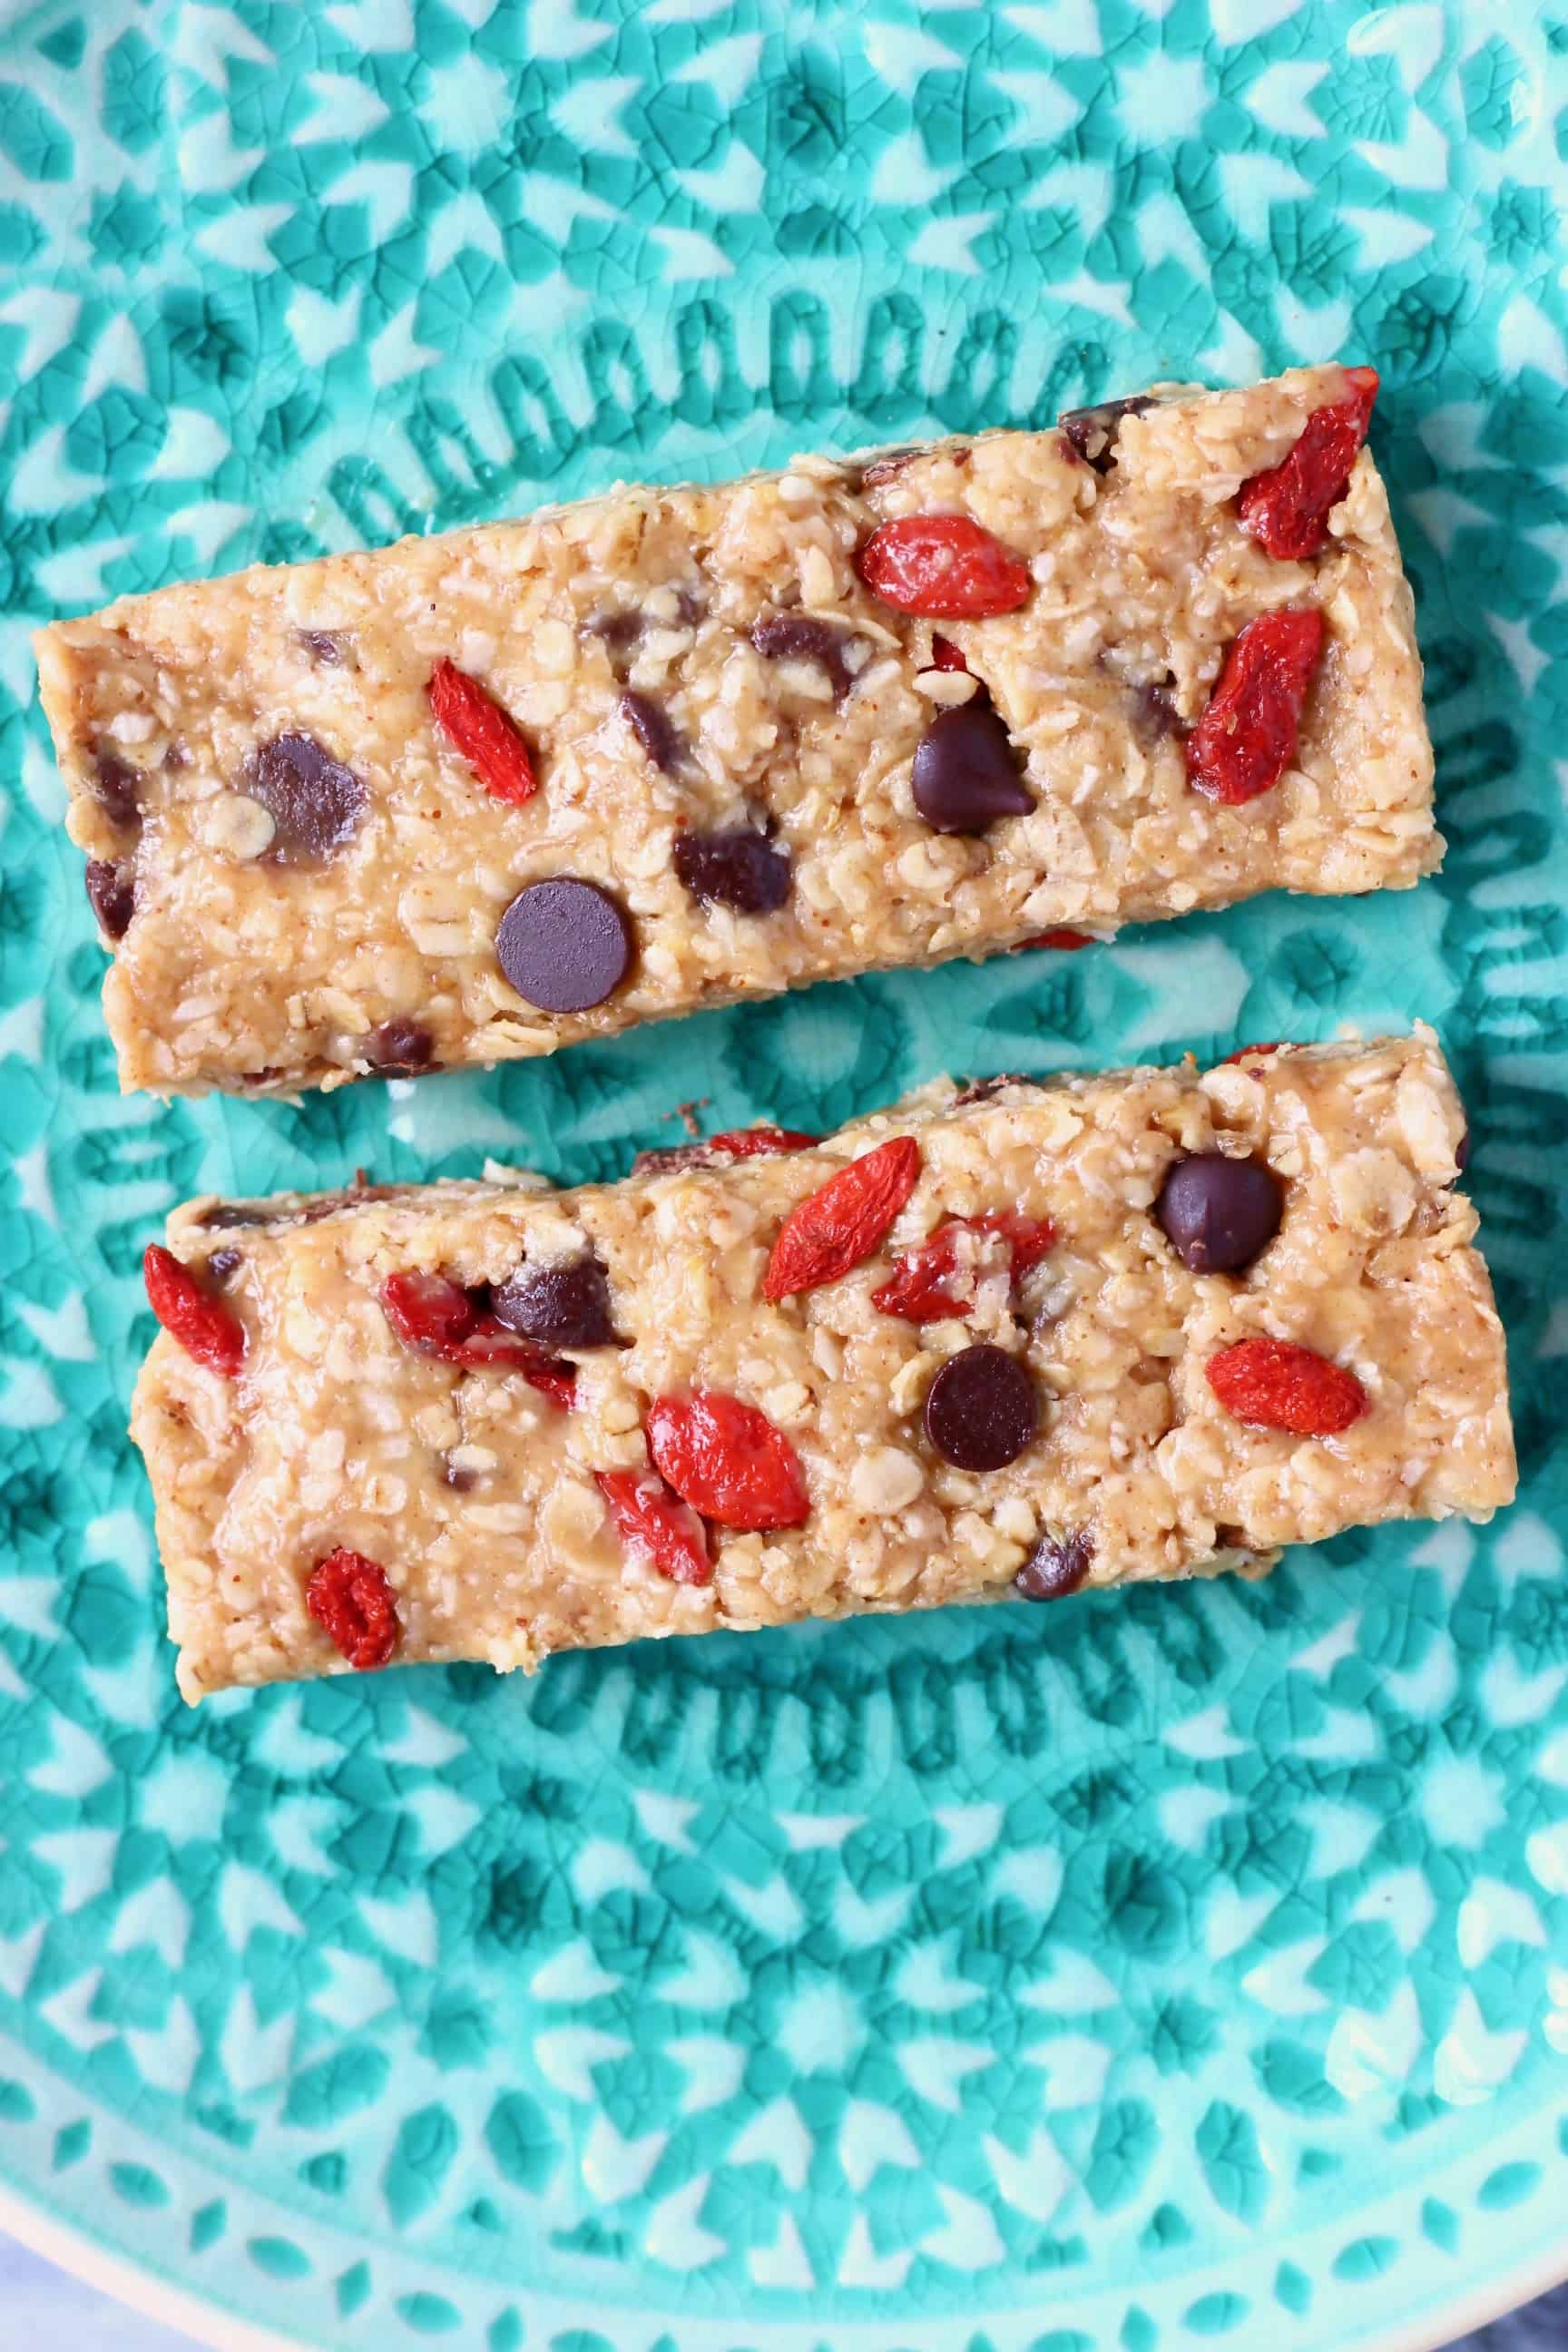 Two no-bake granola bars with chocolate chips and goji berries on a plate